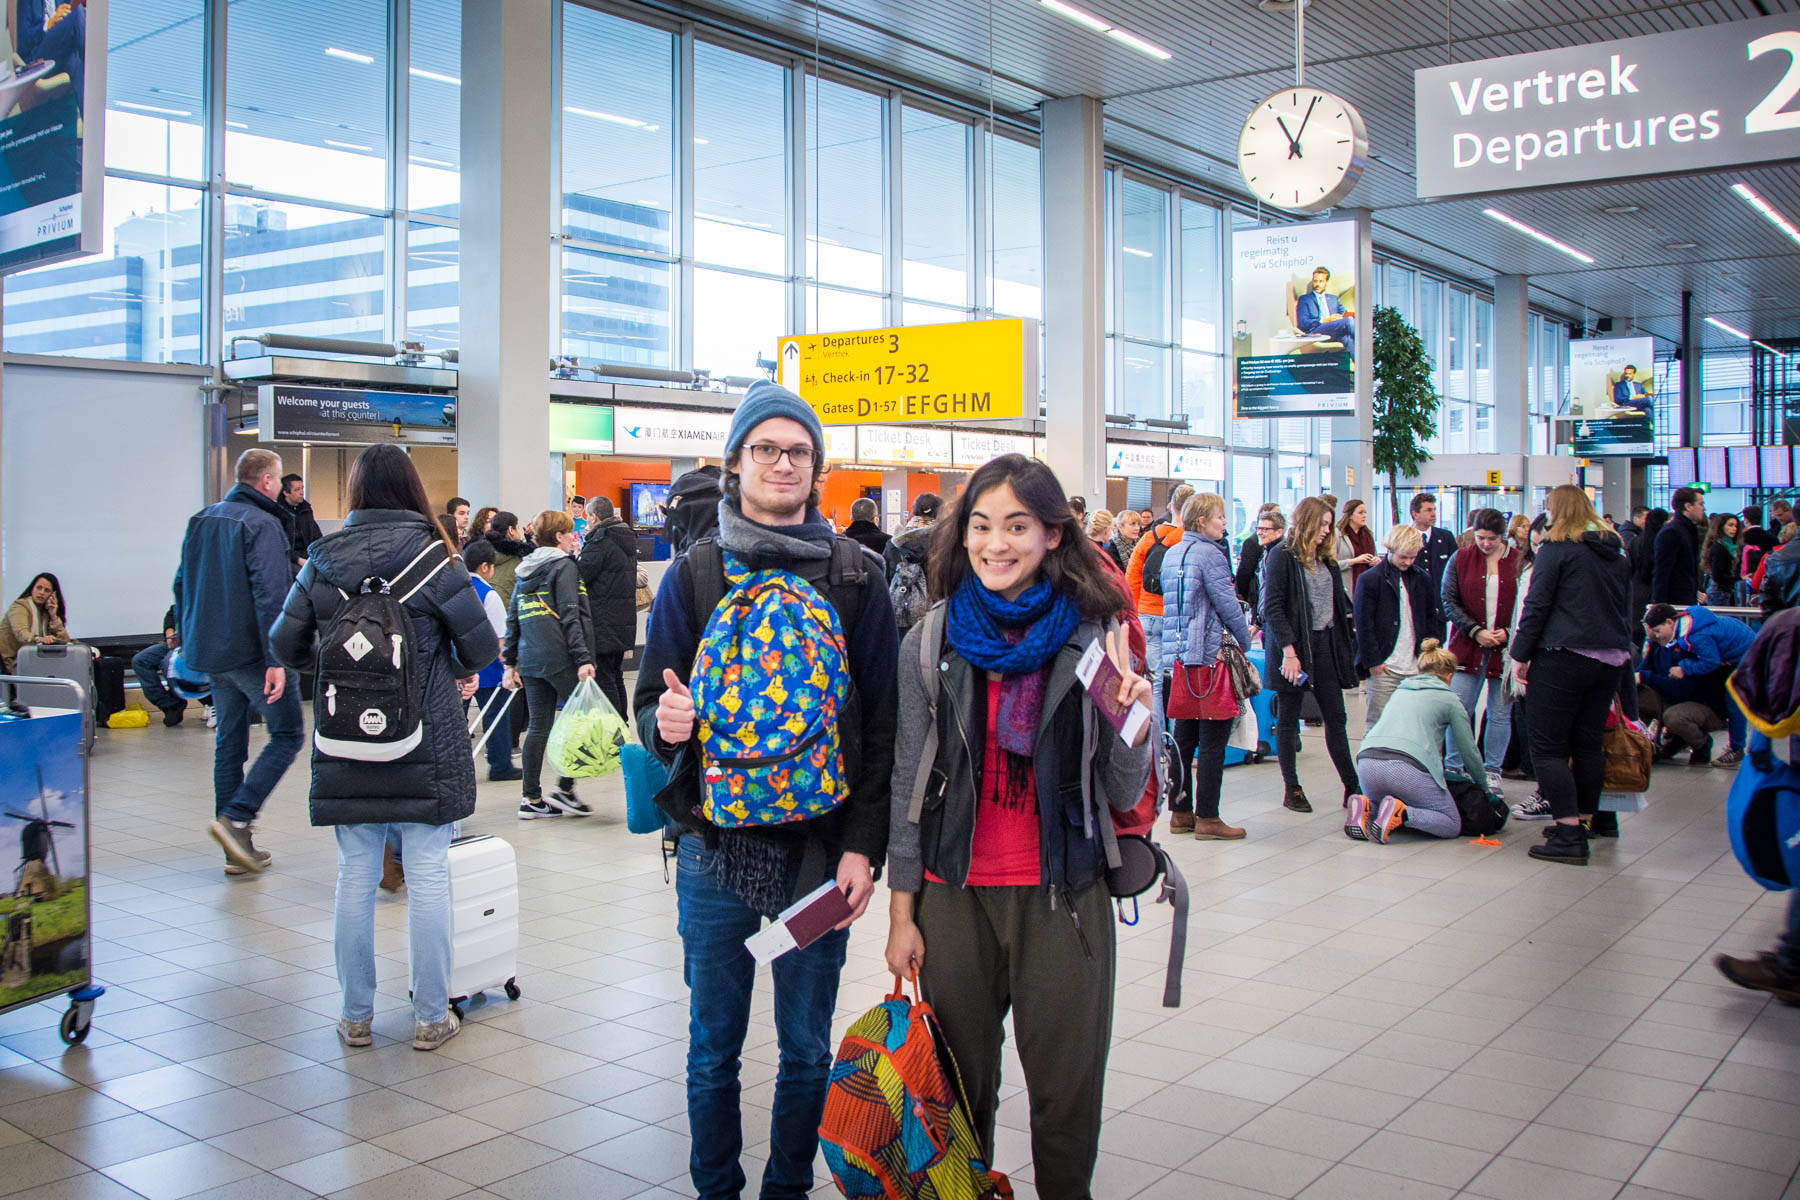 Our journey beginning in Schiphol Airport, Amsterdam